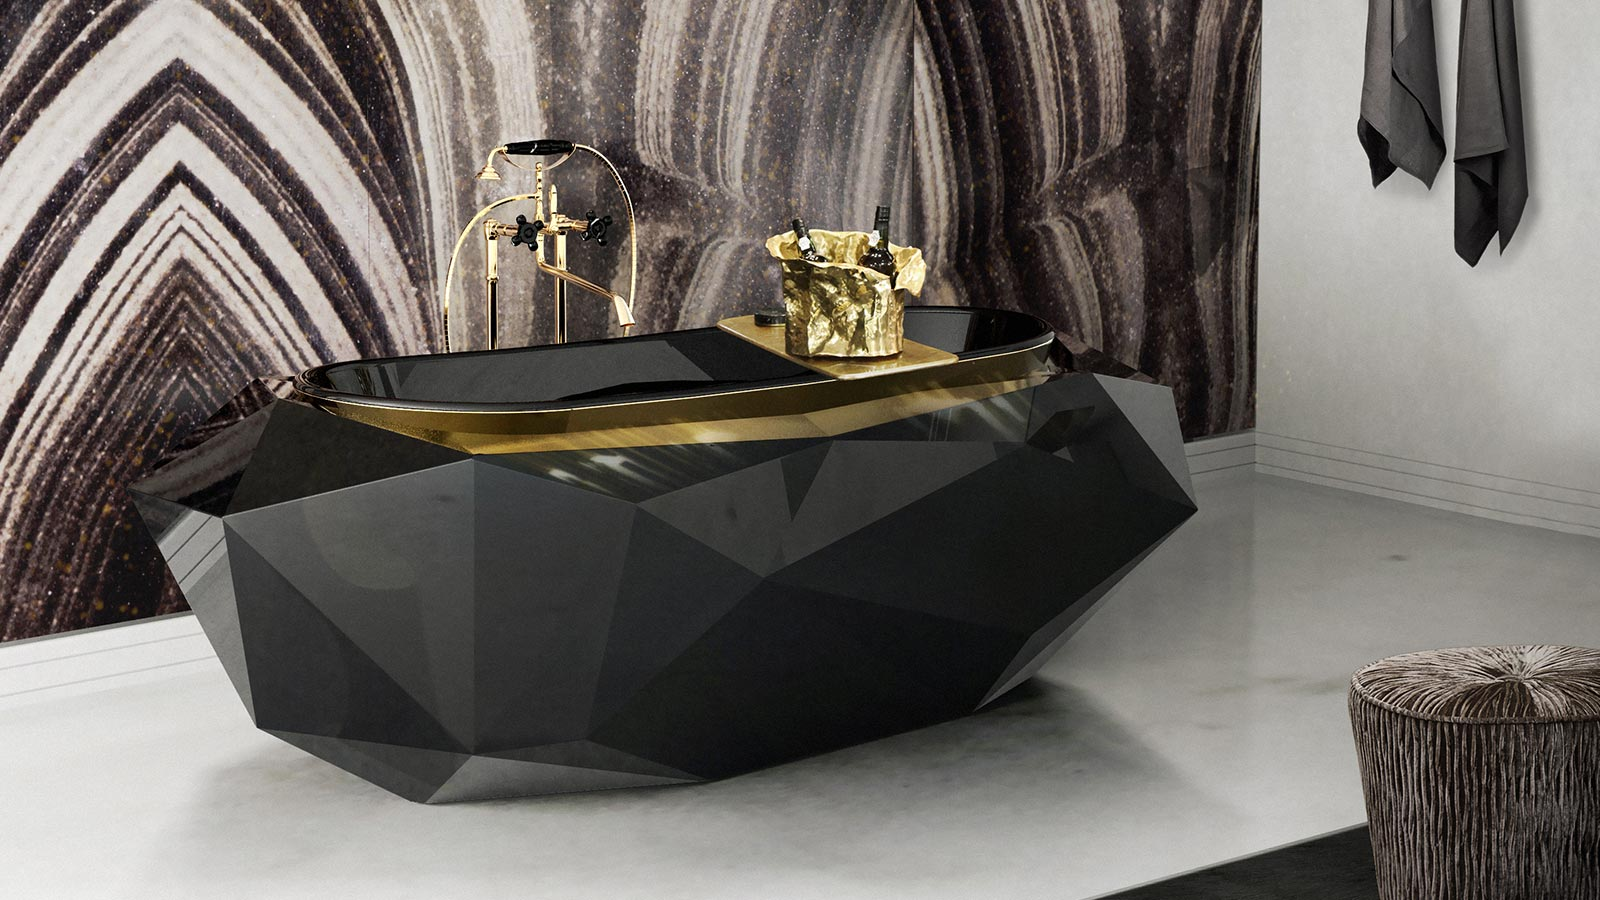 The best lighting for the most luxurious bathrooms bathroom trend Bathroom Trends: Black Finishes luxurious bathrooms1 bathroom trend Bathroom Trends: Black Finishes luxurious bathrooms1